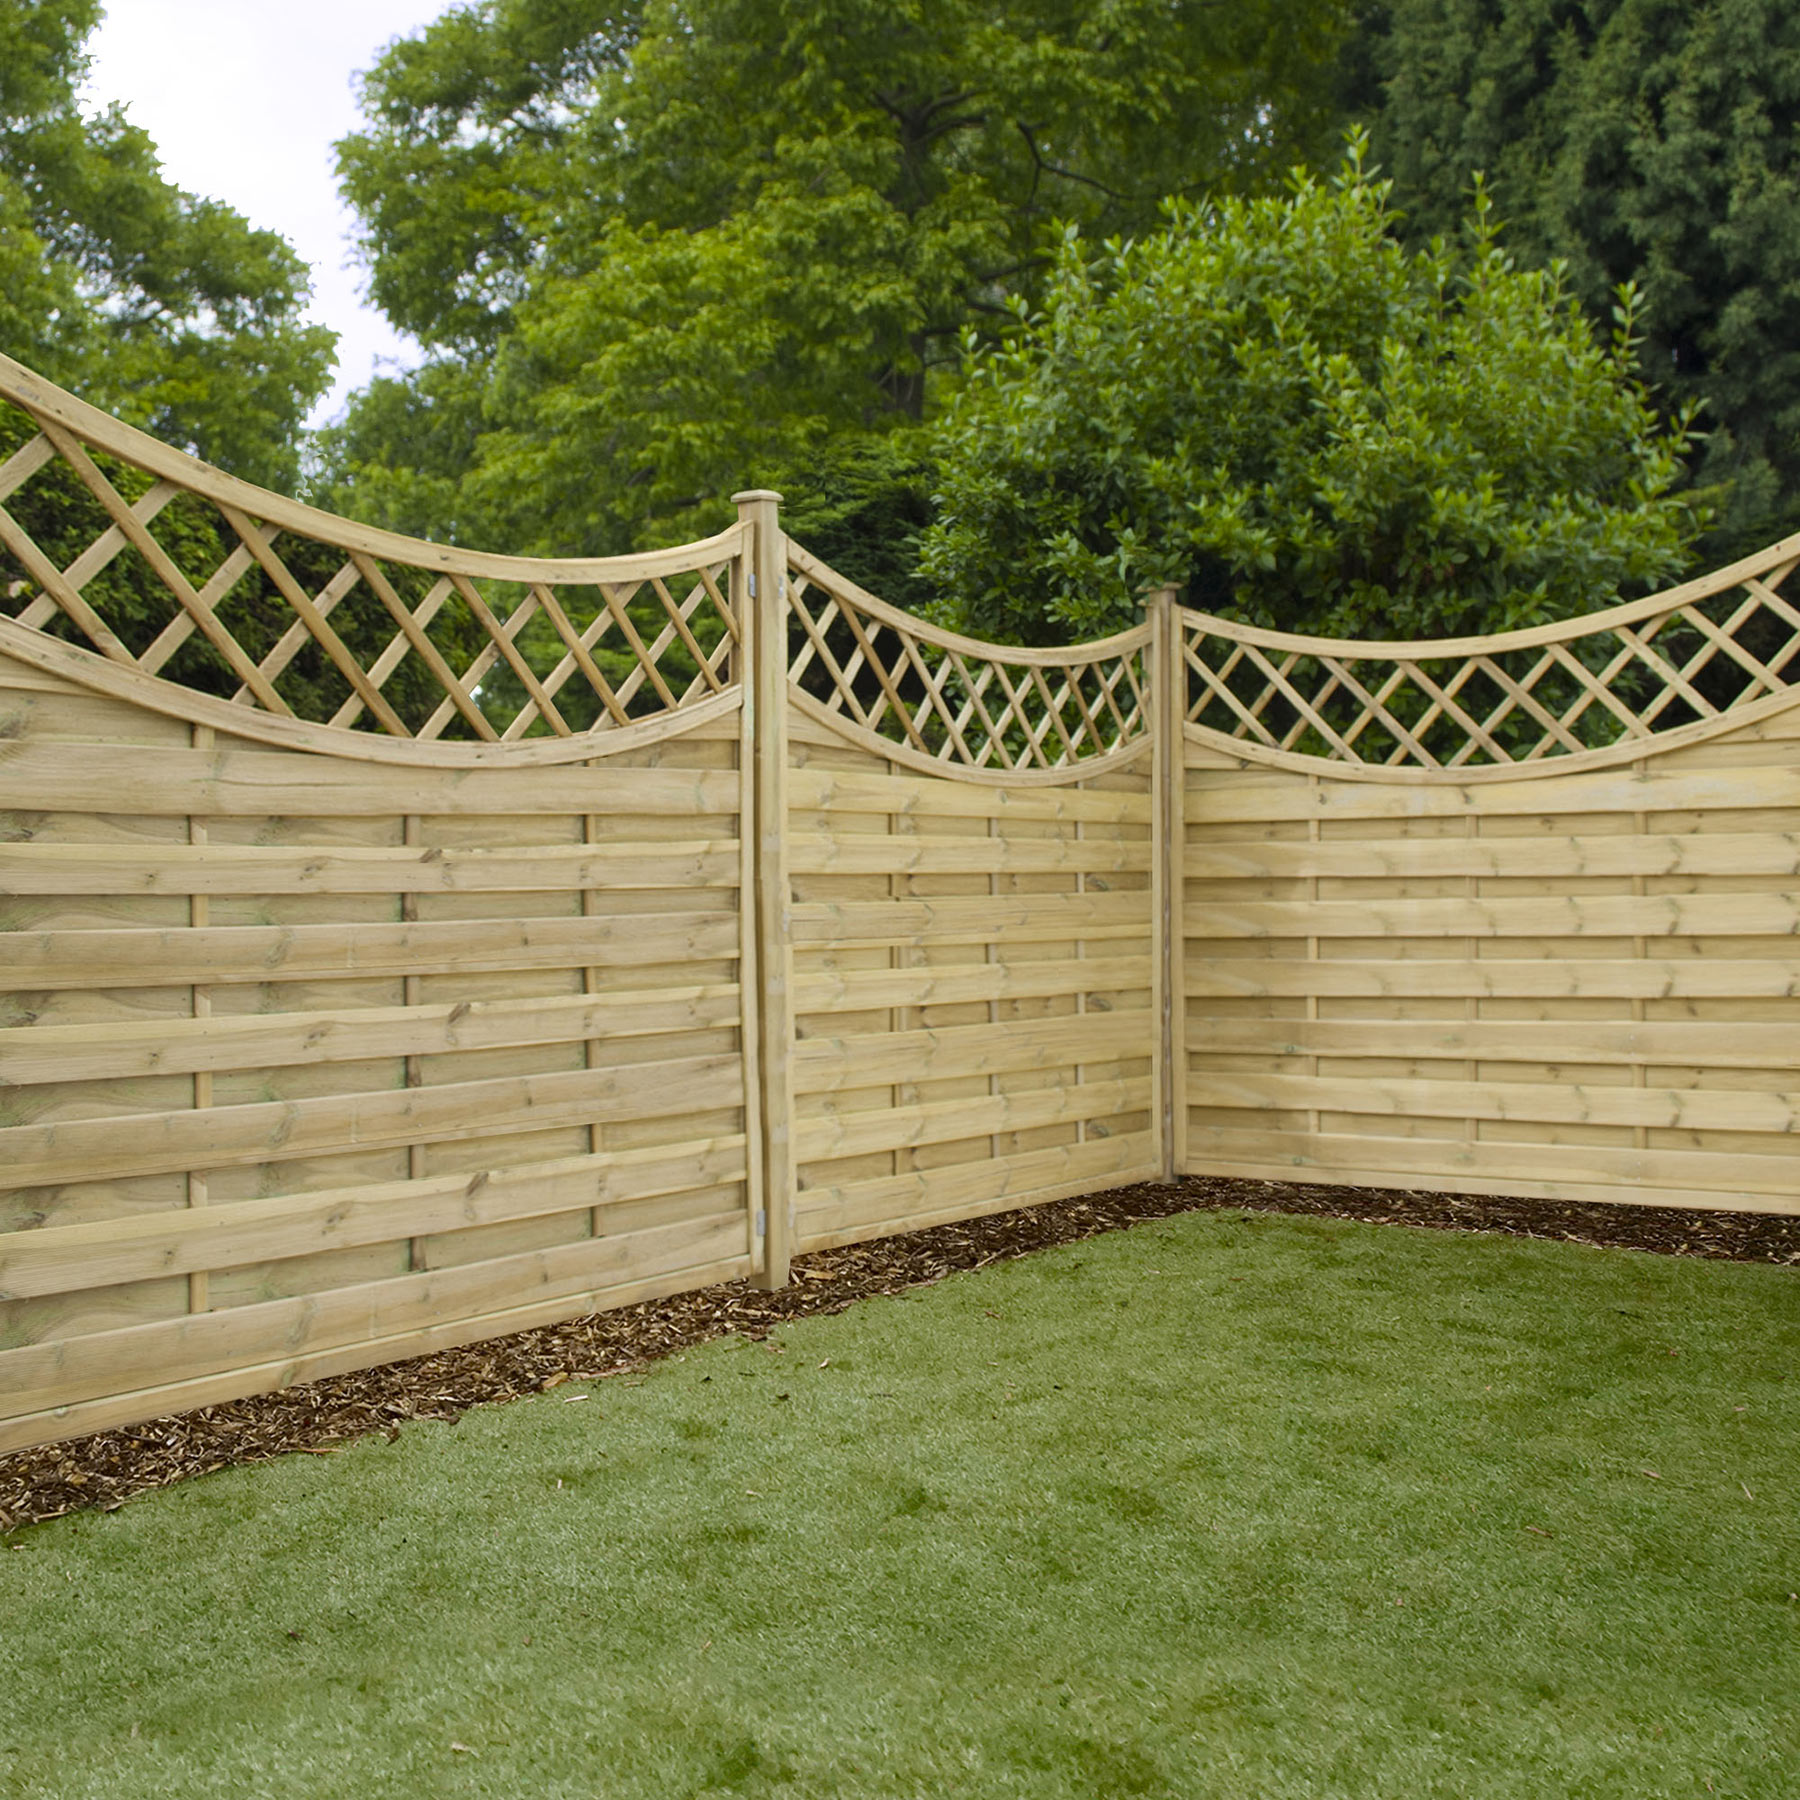 Horizontal weave fencing with trellis